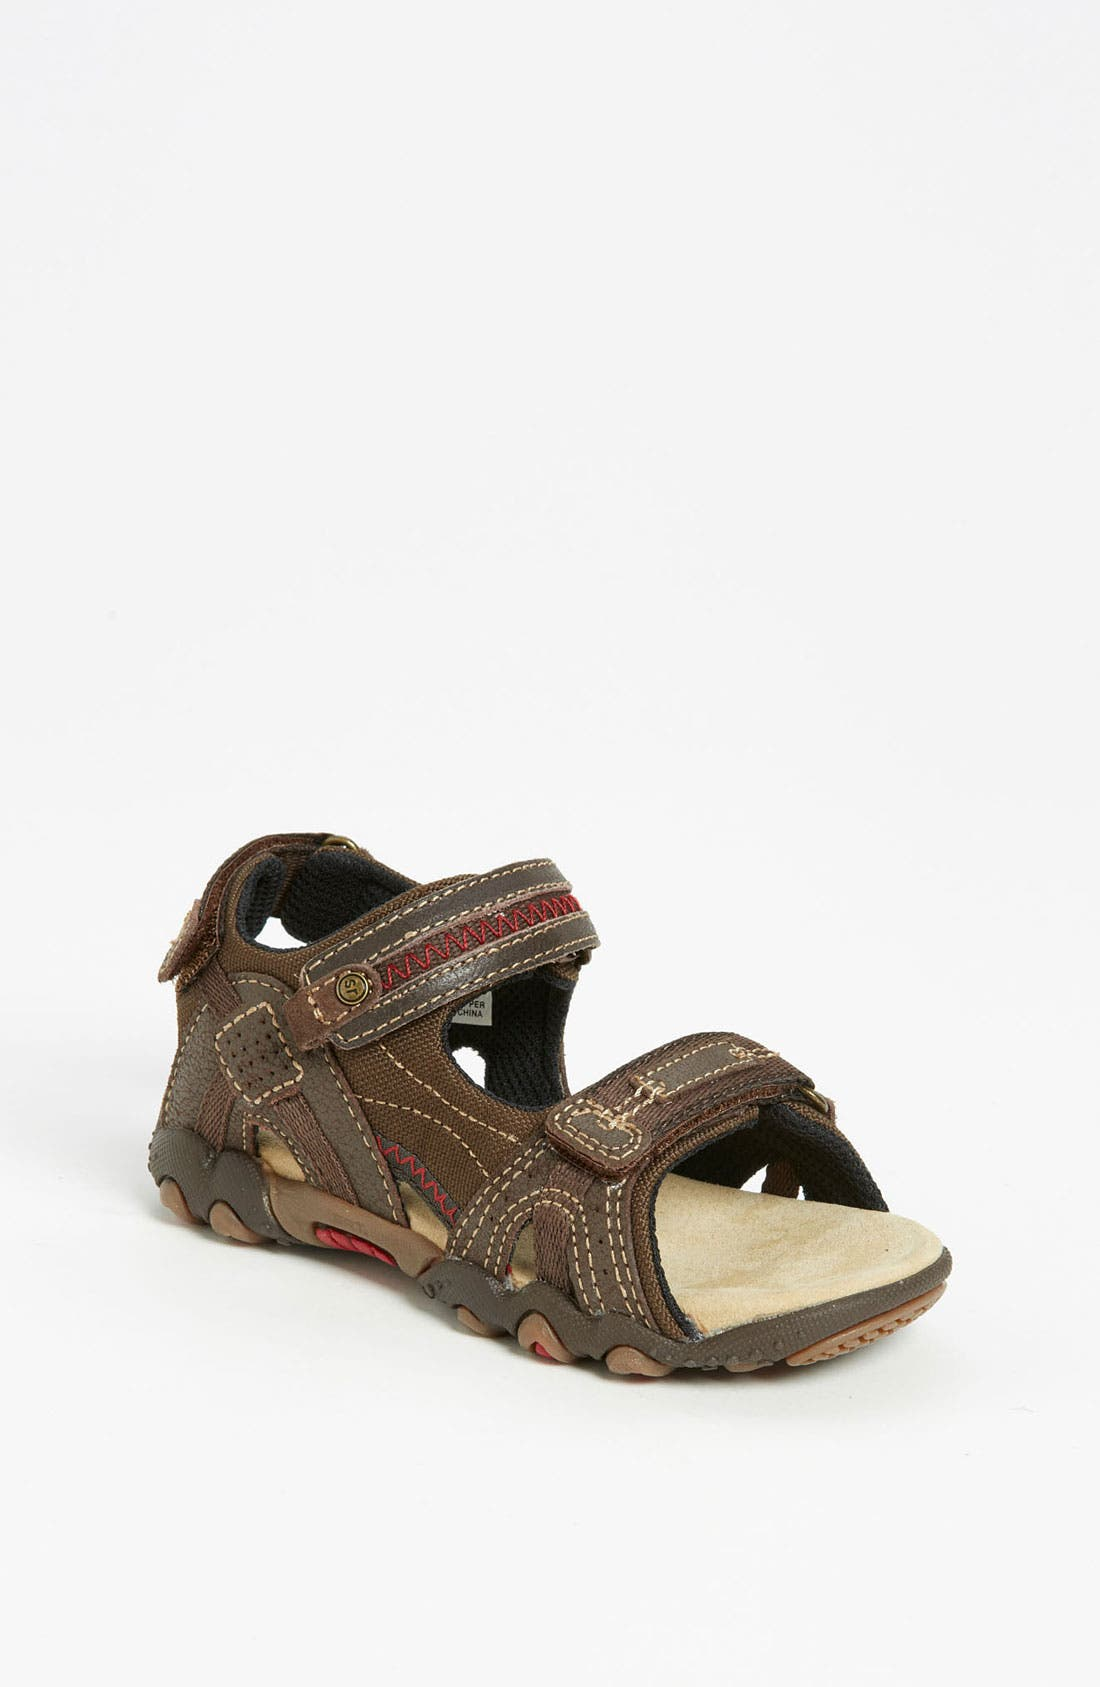 Alternate Image 1 Selected - Stride Rite 'Scooter' Sandal (Toddler & Little Kid)